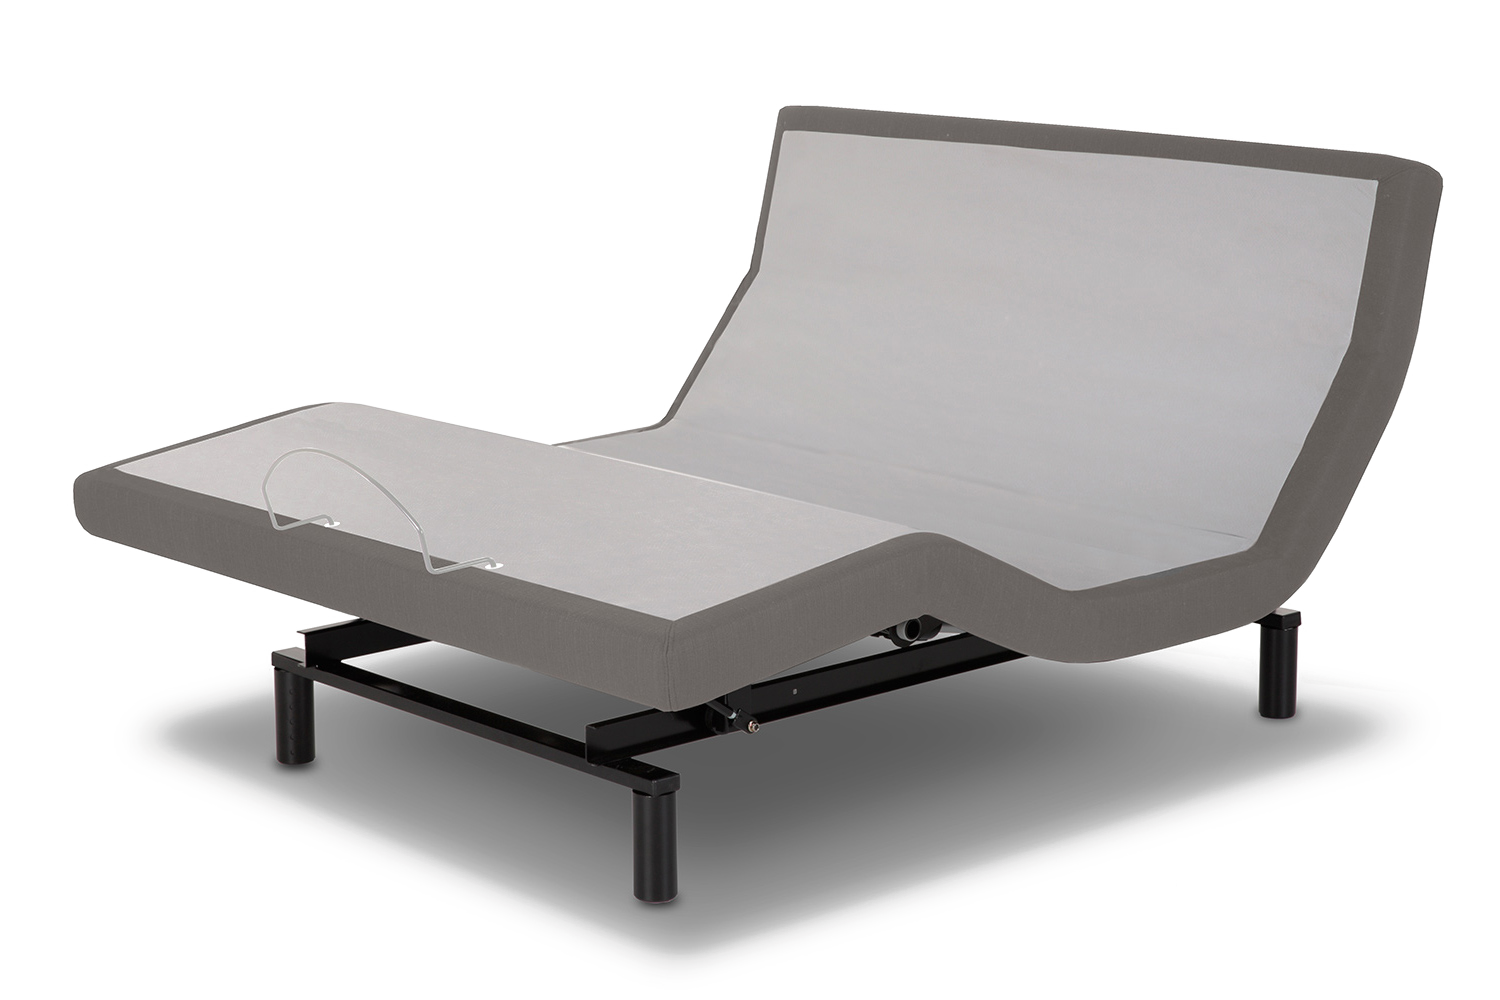 Premier Foundation Style Adjustable Bed Base Leggett